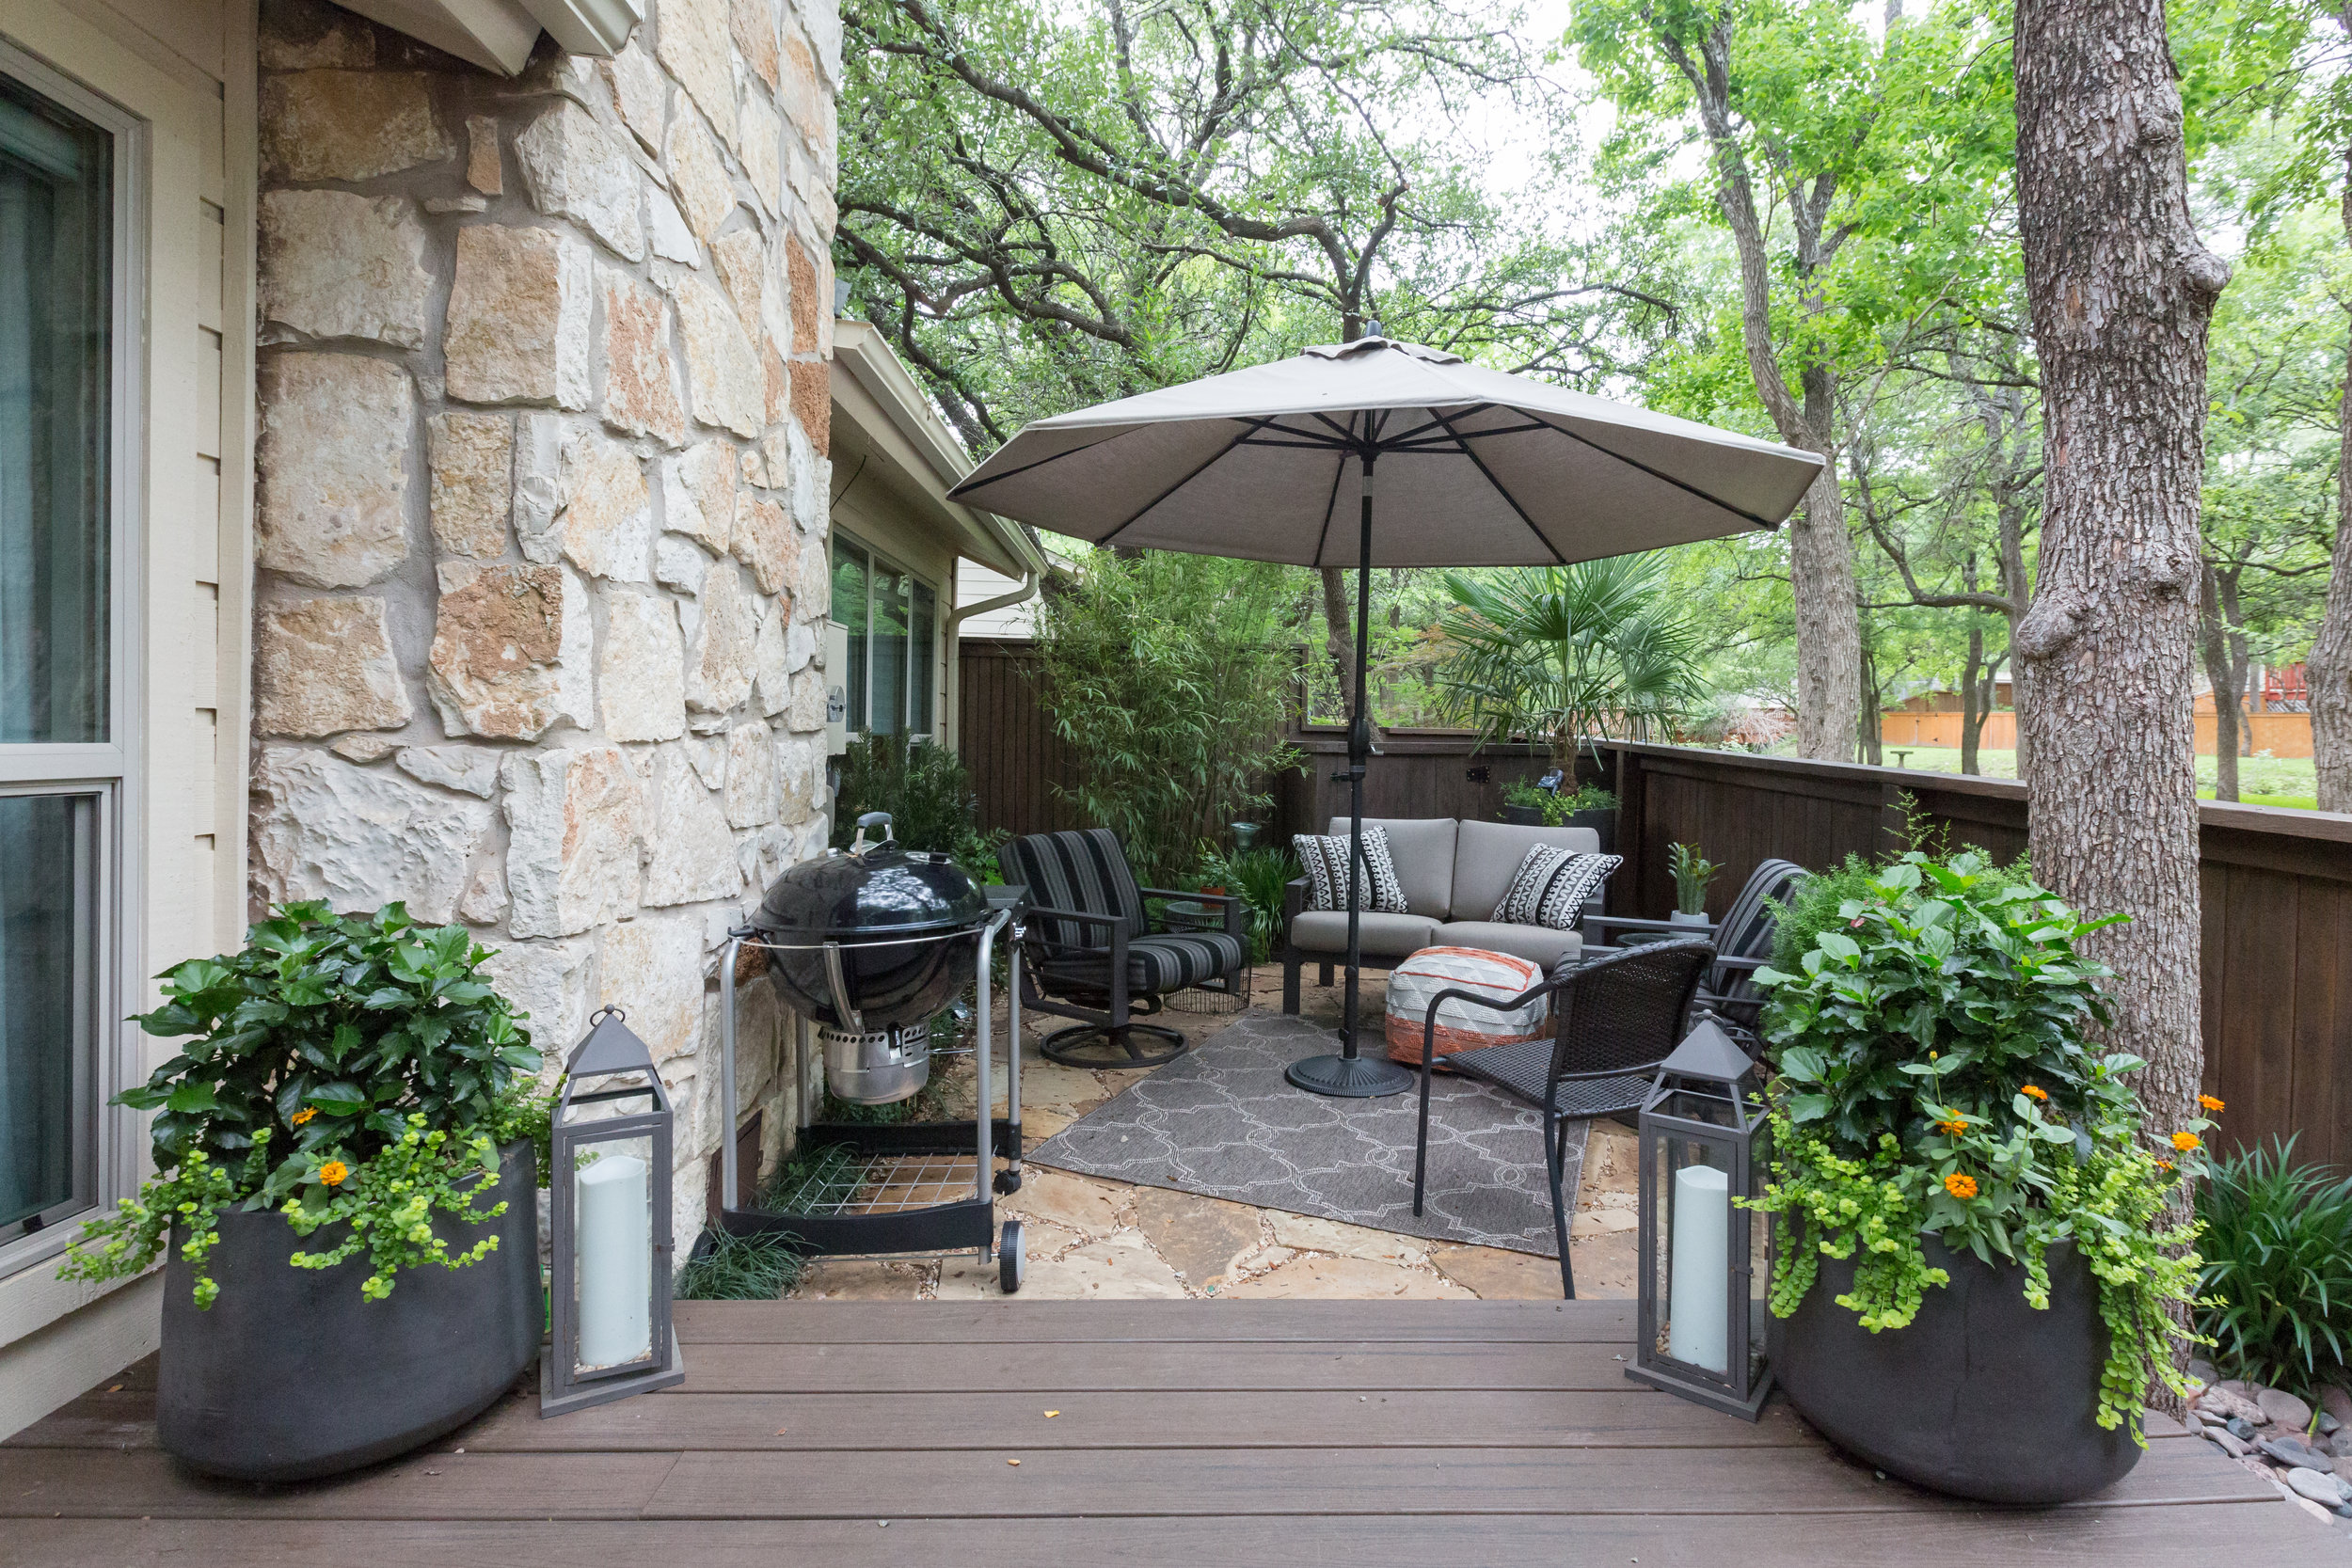 New patio furniture in newly landscaped back yard of renovated austin condo